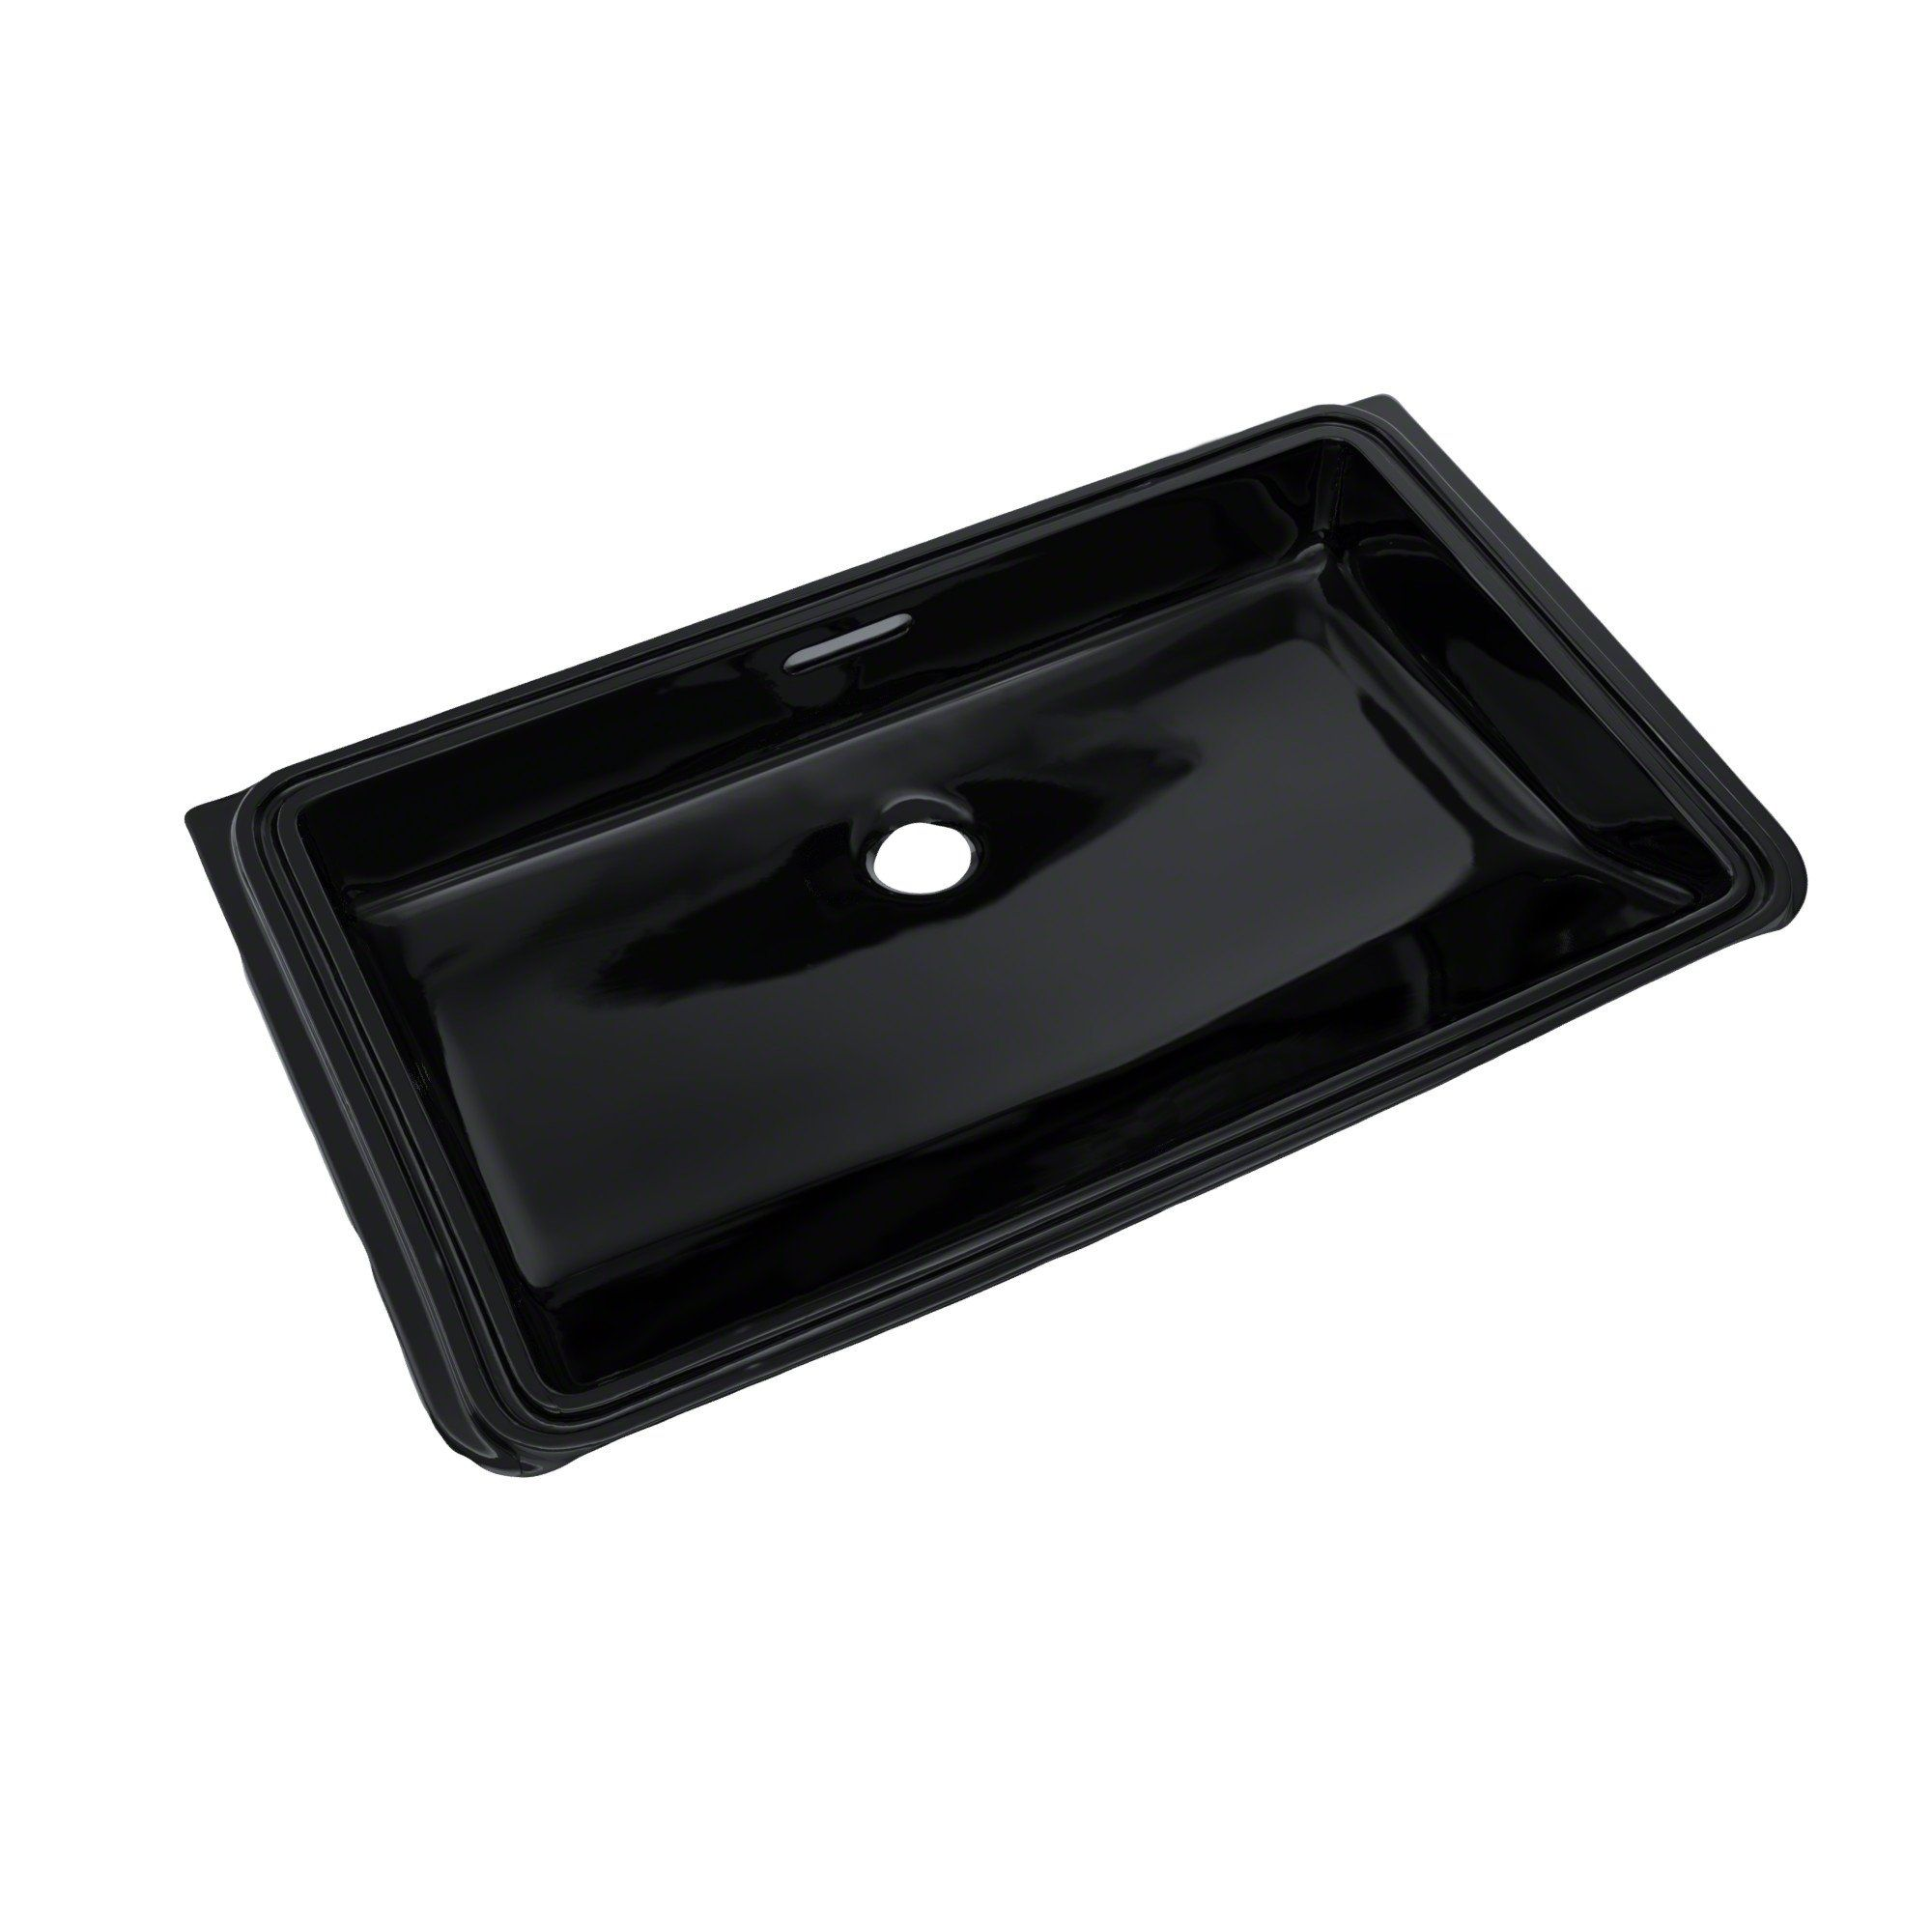 Toto Rectangular Undermount Bathroom Sink Ebony Undermount Bathroom Sink Sink Wall Mounted Bathroom Sinks